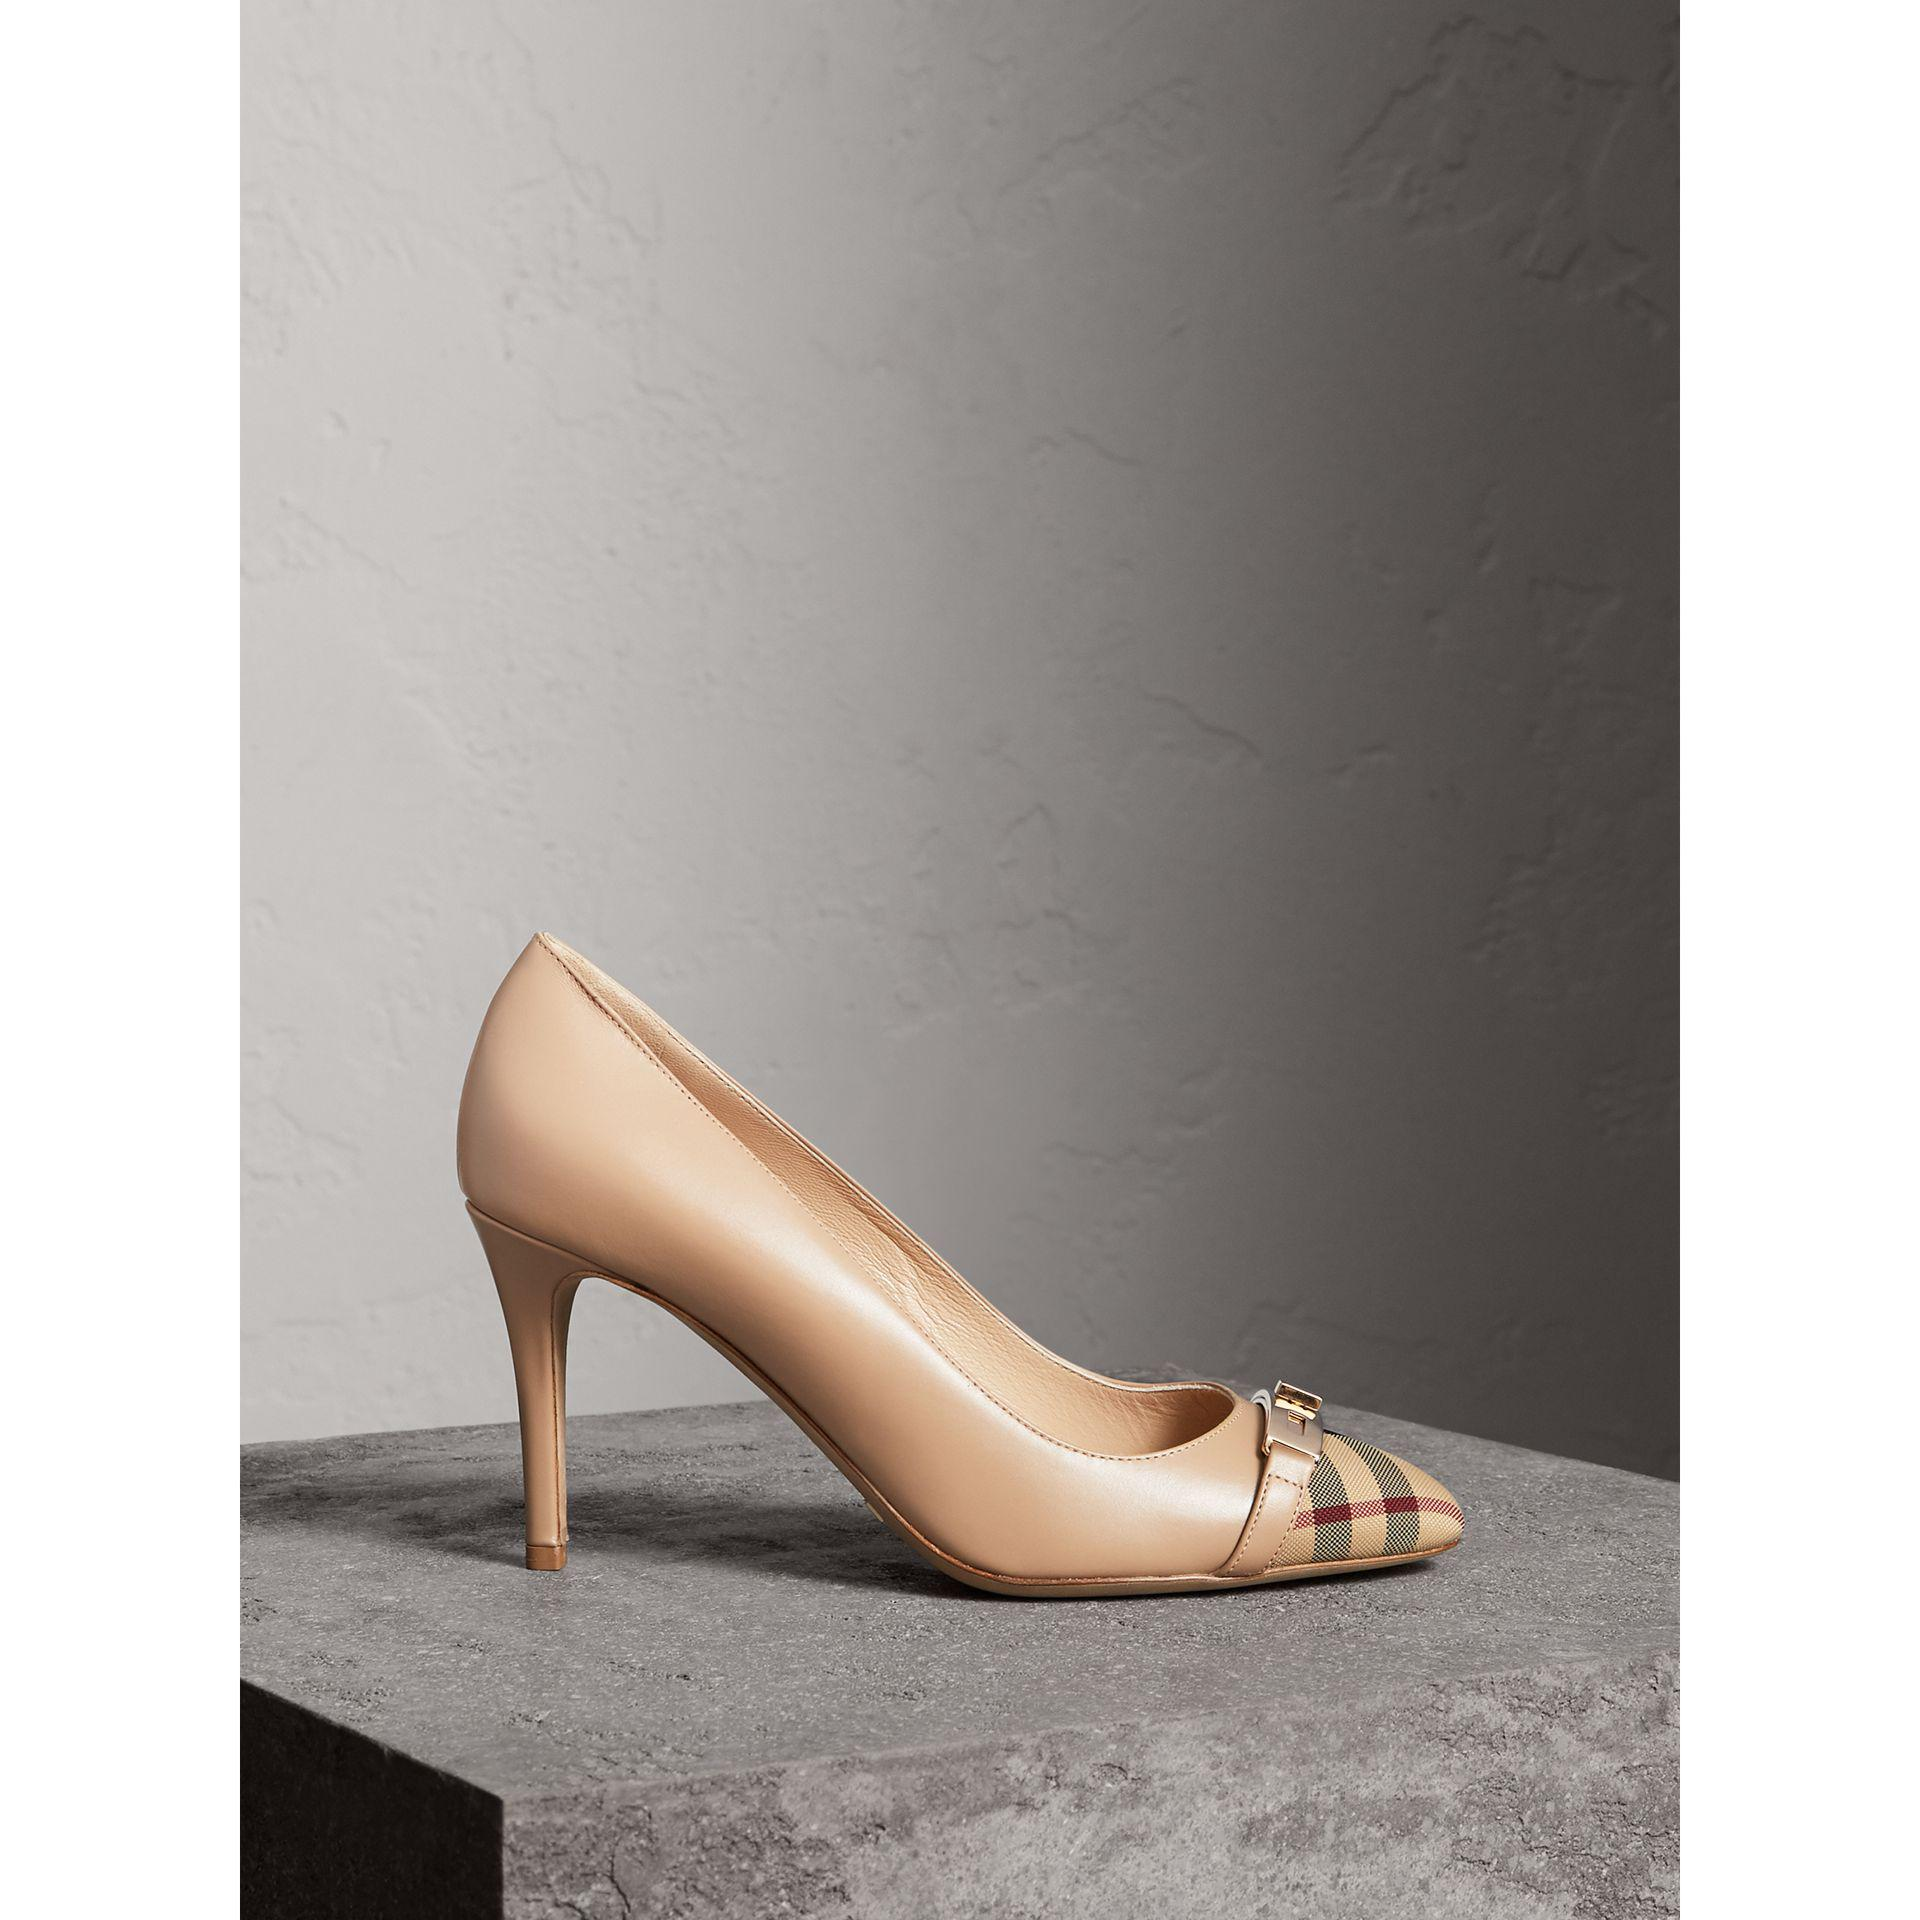 Burberry Horseferry Check Leather Pumps Lyst